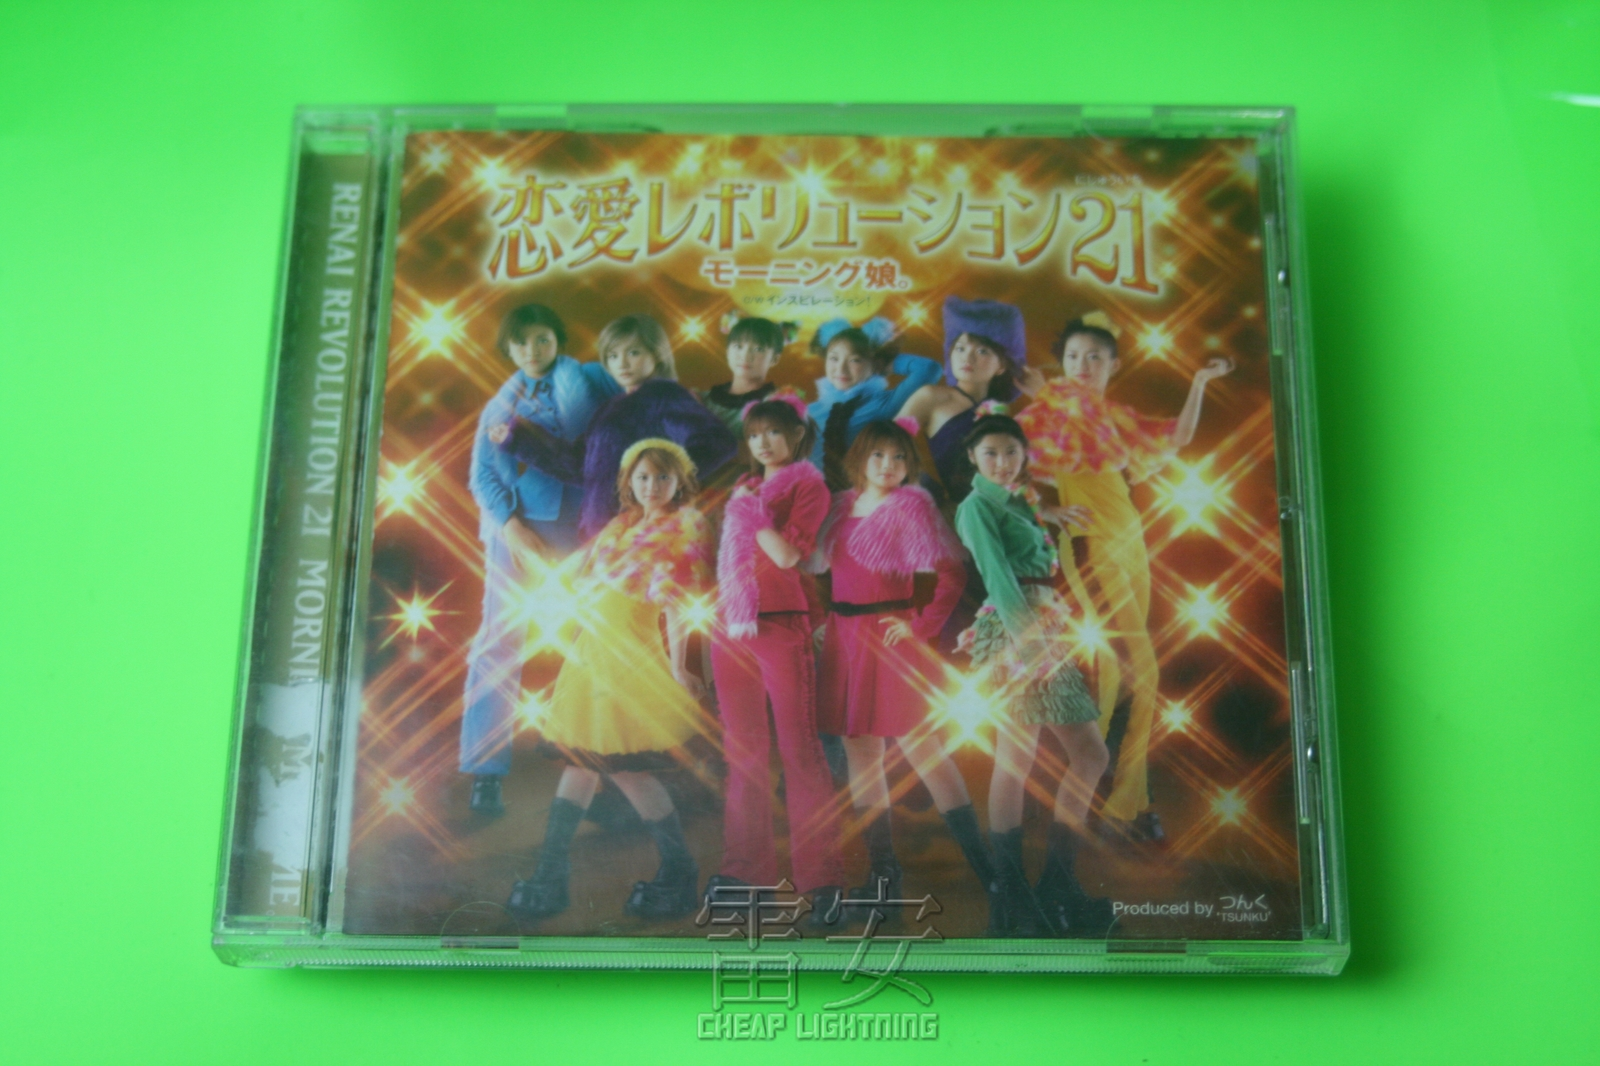 Renai revolution 21 by morning musume 2